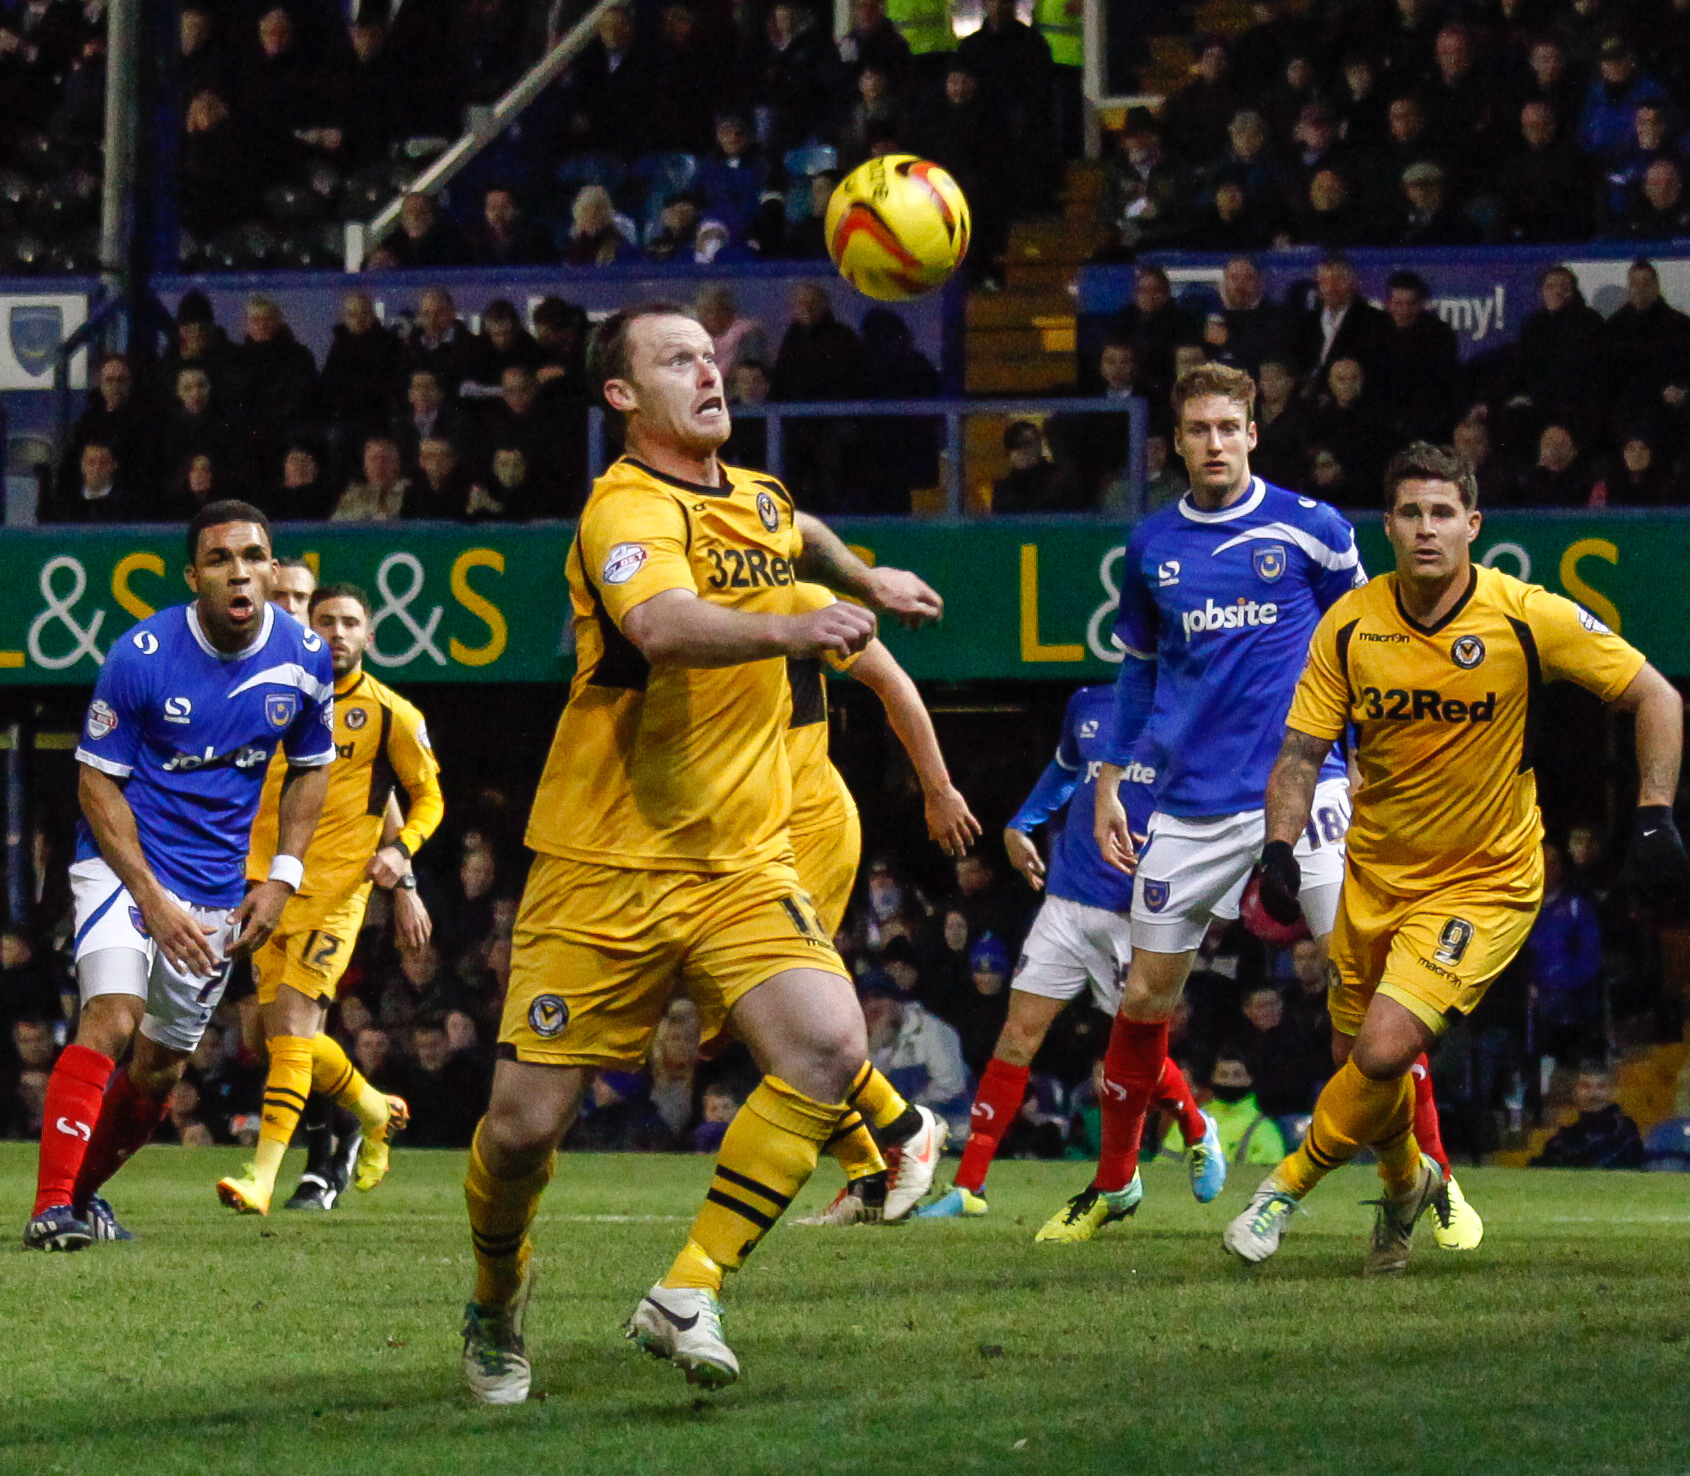 DEADLY: Here I am about to score my second goal at Portsmouth last month